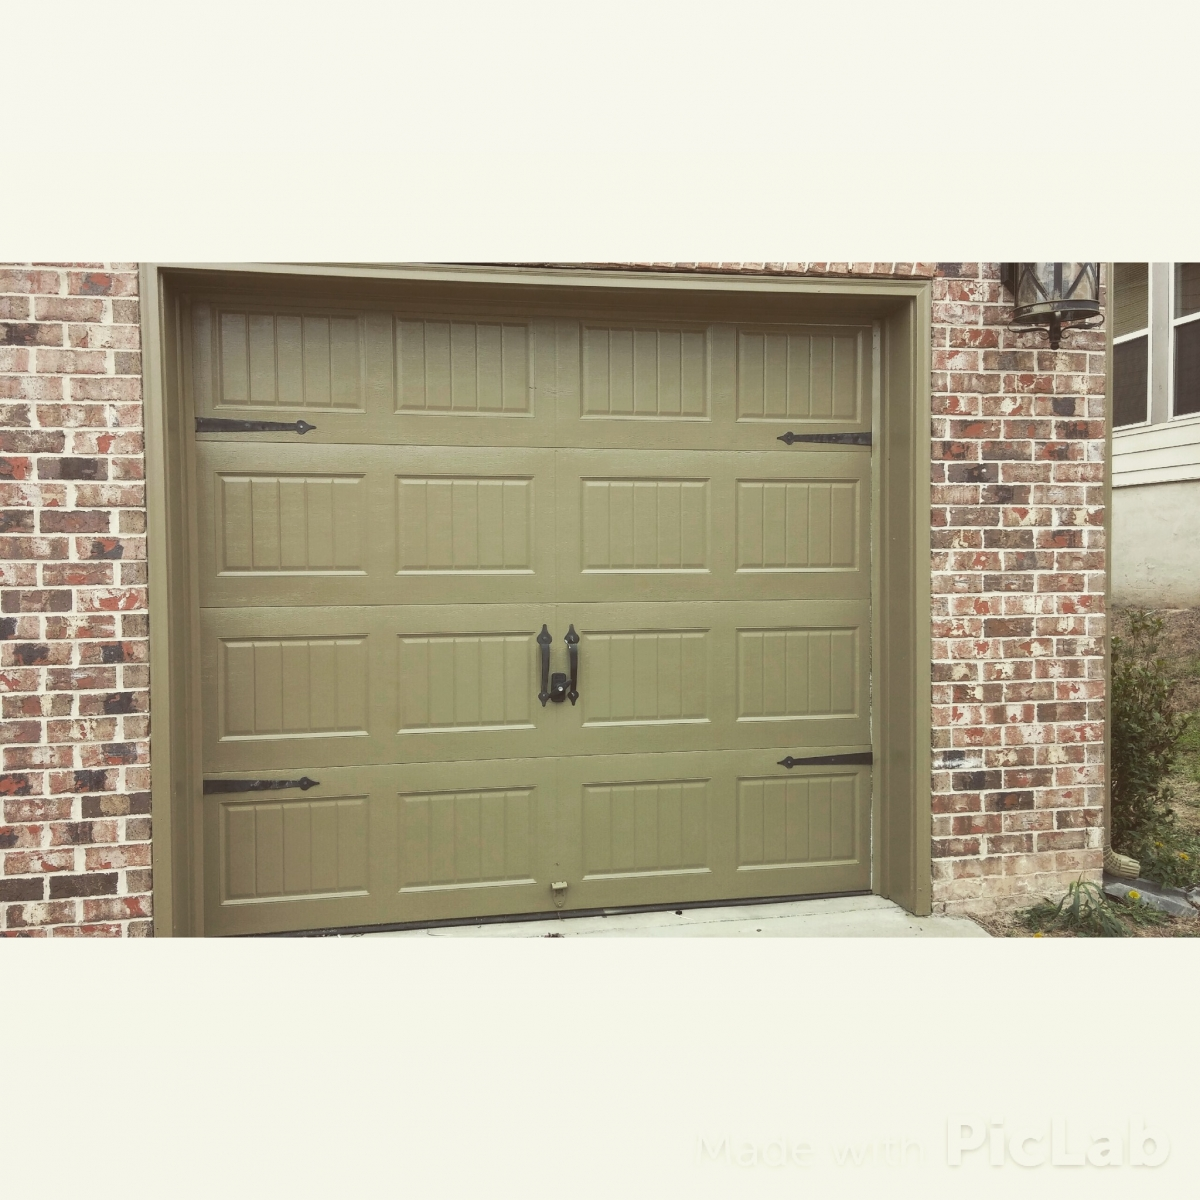 Garage Door Repair Lawrenceville Ga Superior Garage Doors